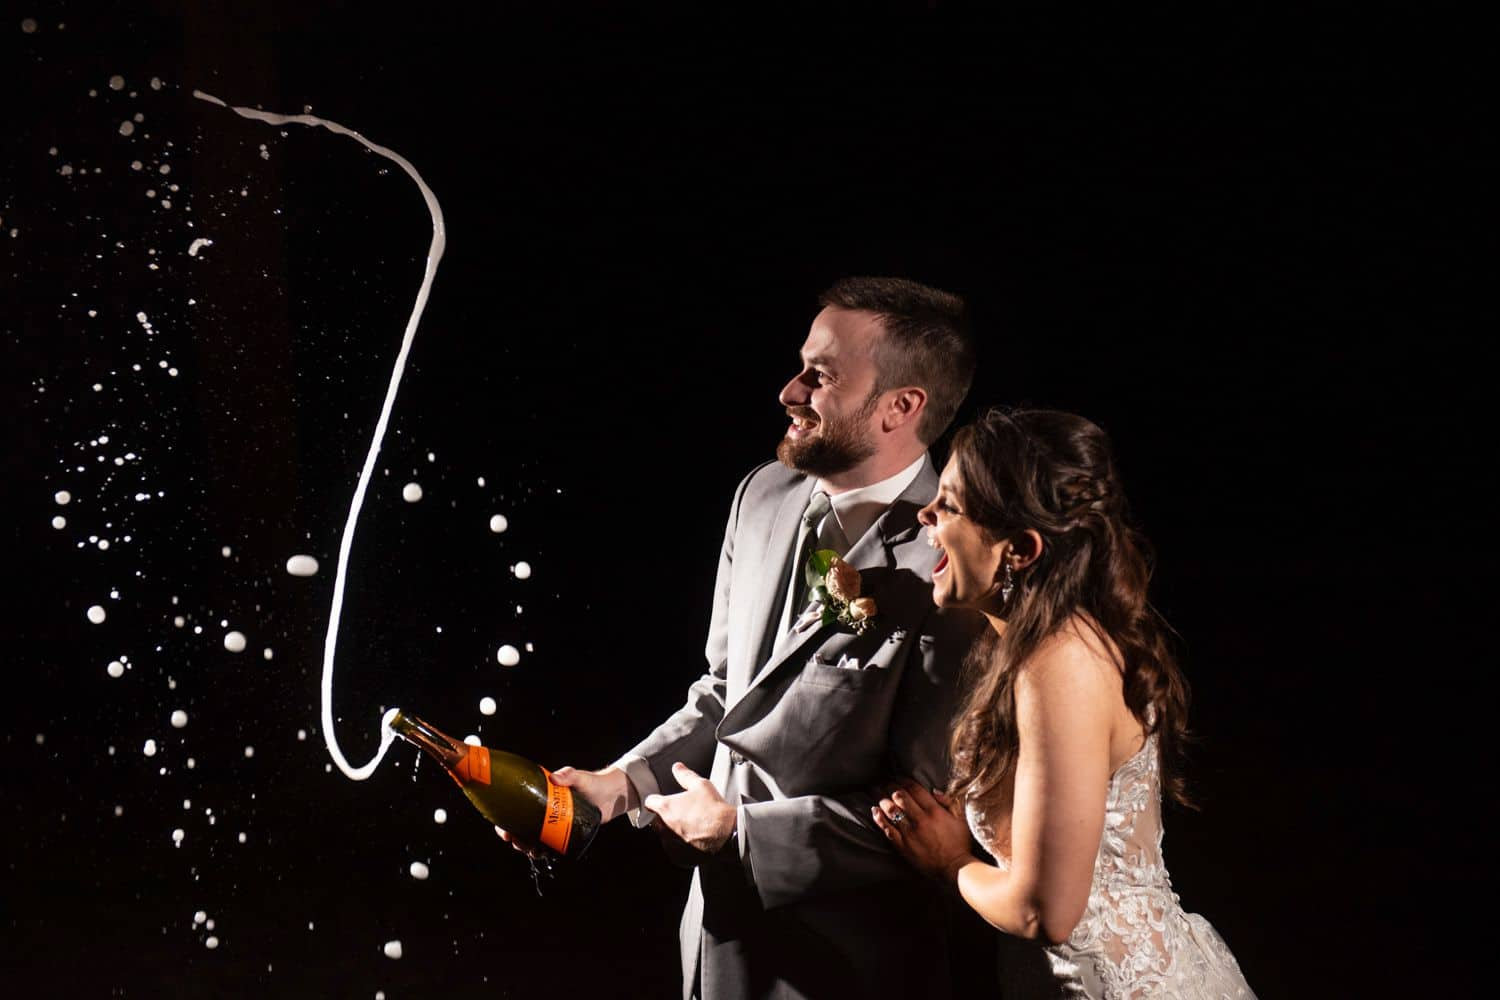 A bride and groom laugh as they pop a bottle of champagne